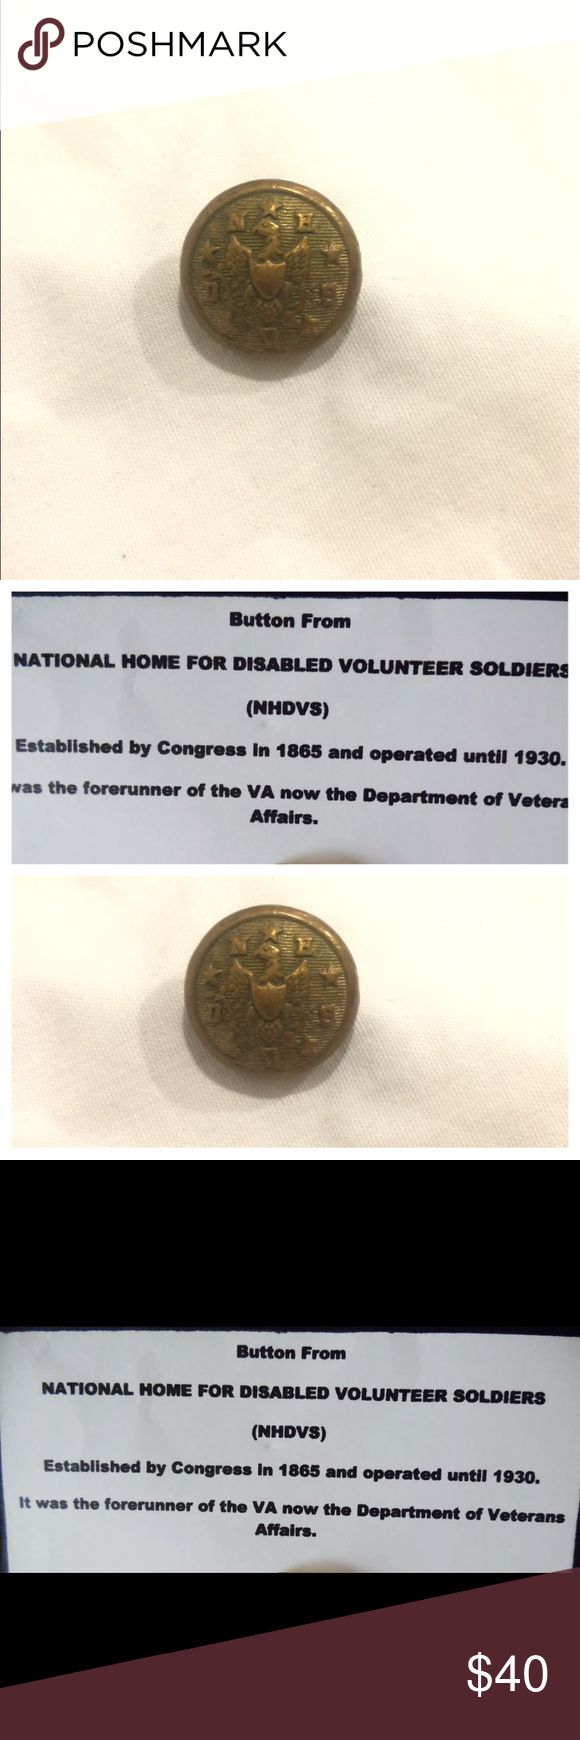 "ANTIQUE NHVDS 5/8 inch BUTTON BY Steele & Johnson VINTAGE c1865 - 1930 (NHDVS) NATIONAL HOME FOR DISABLED VOLUNTEER SOLDIERS BUTTON IN EXCELLENT AS FOUND ORIGINAL CONDITION  THIS IS A BUTTON WITH A SOLID SHANK AND IT MEASURES APPROX 5/8"" in DIAMETER   IT WAS MADE BY STEELE AND JOHNSON OF WATERBURY, CONN. AND ITS IN EXCELLENT CONDITION WITH A NICE PATINA FROM AGE  THE (NHDVS) WAS ESTABLISHED BY CONGRESS IN 1865 AND OPERATED UNTILL 1930 IT WAS THE FORERUNNER OF THE VA NOW THE DEPARTMENT OF…"